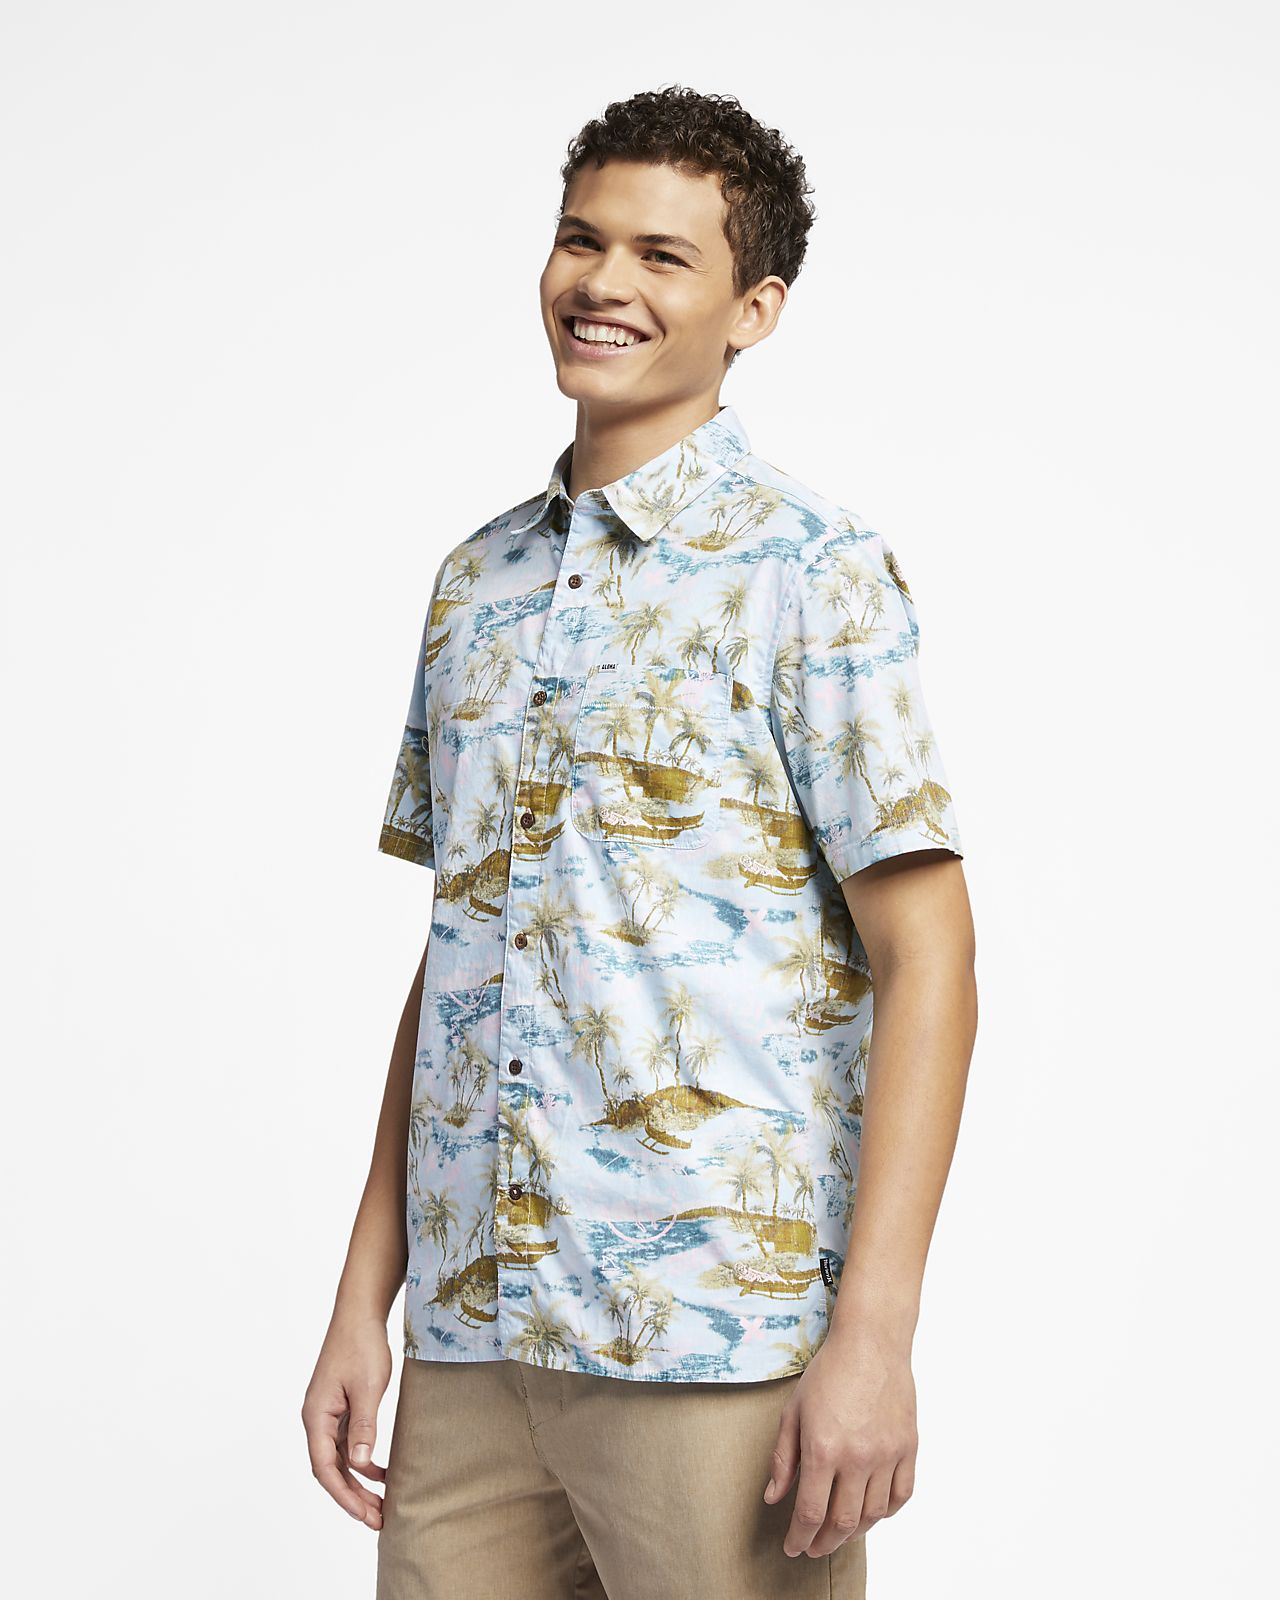 Hurley Outrigger Smiley Men's Shirt